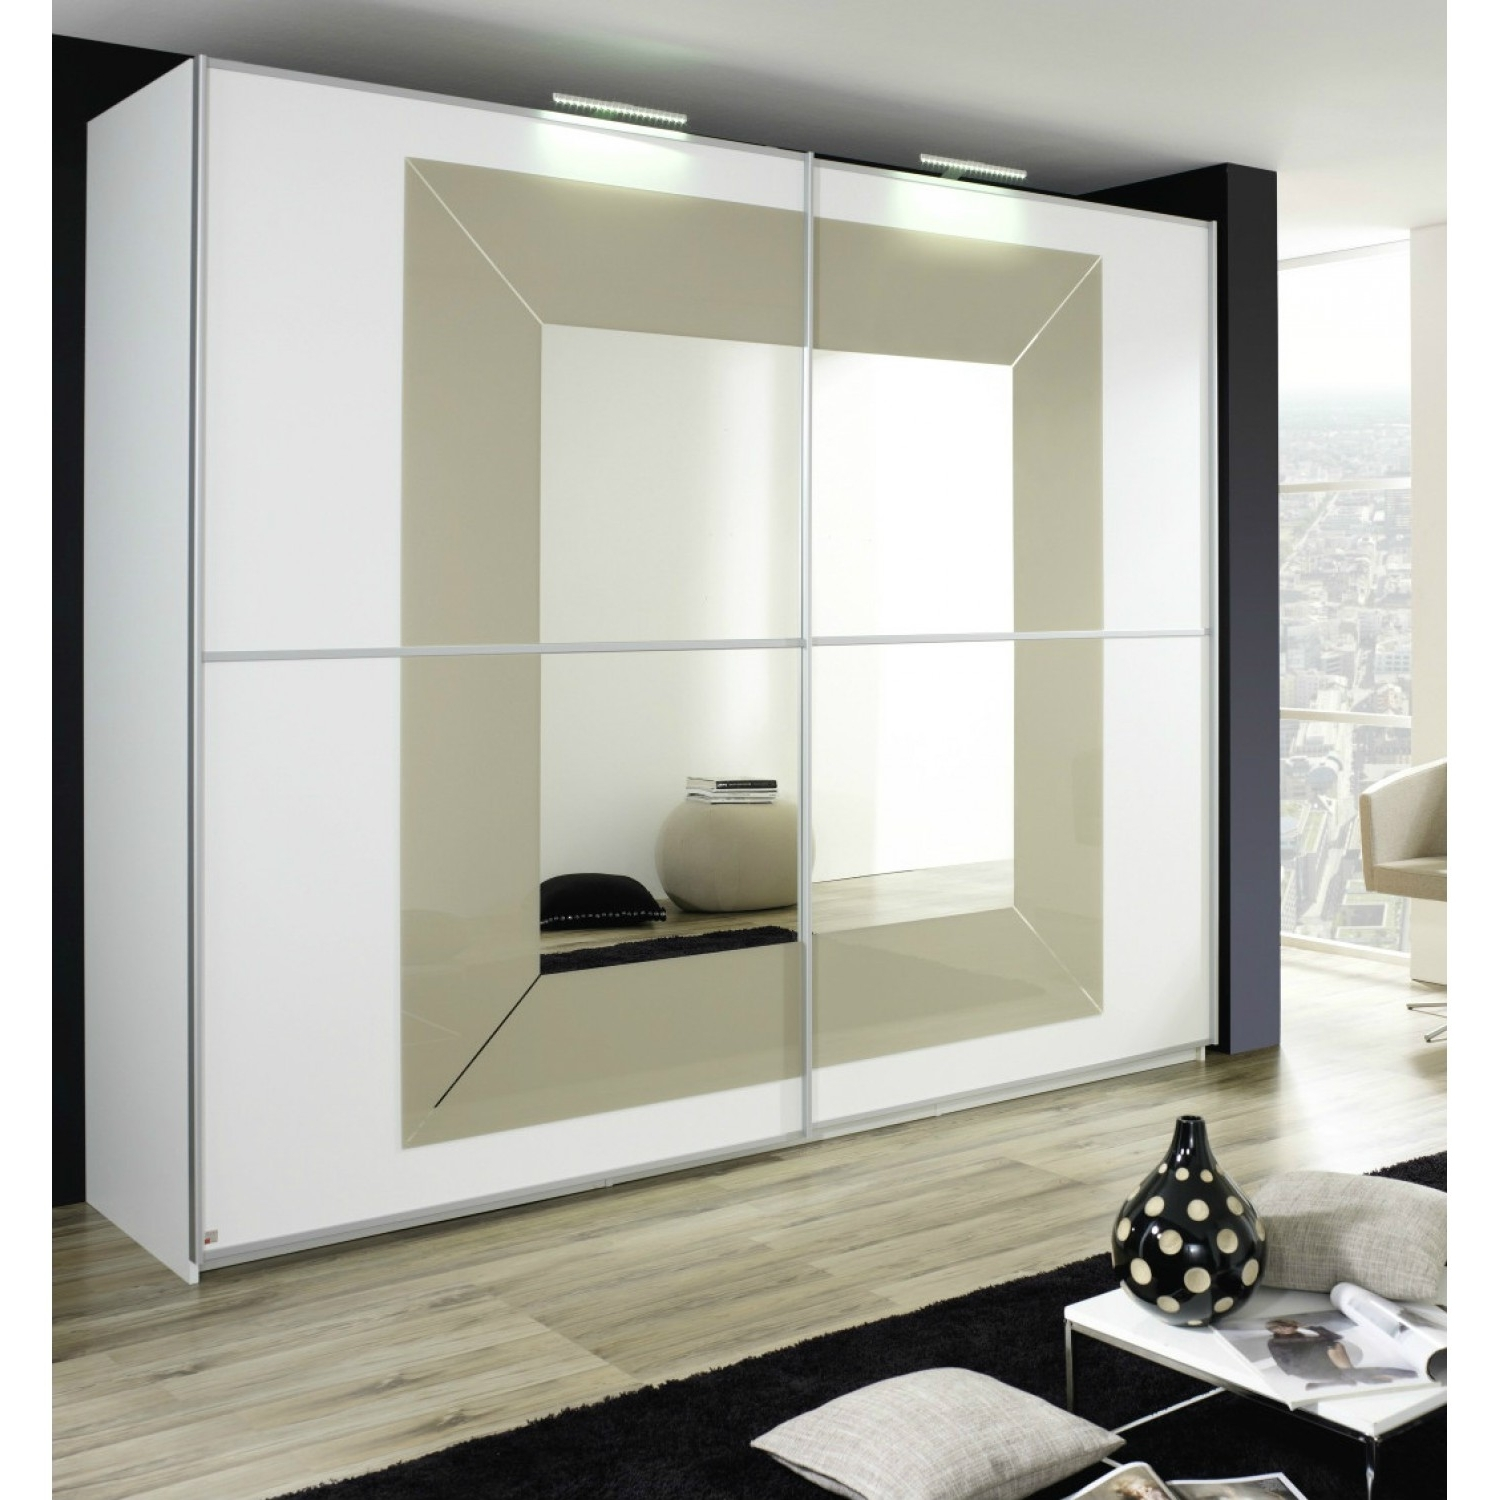 Rauch Sliding Wardrobes Regarding Well Known Focus Dialog Rauch Sliding Wardrobe (225Cm) – Wardrobes – Bedrooms (View 14 of 15)